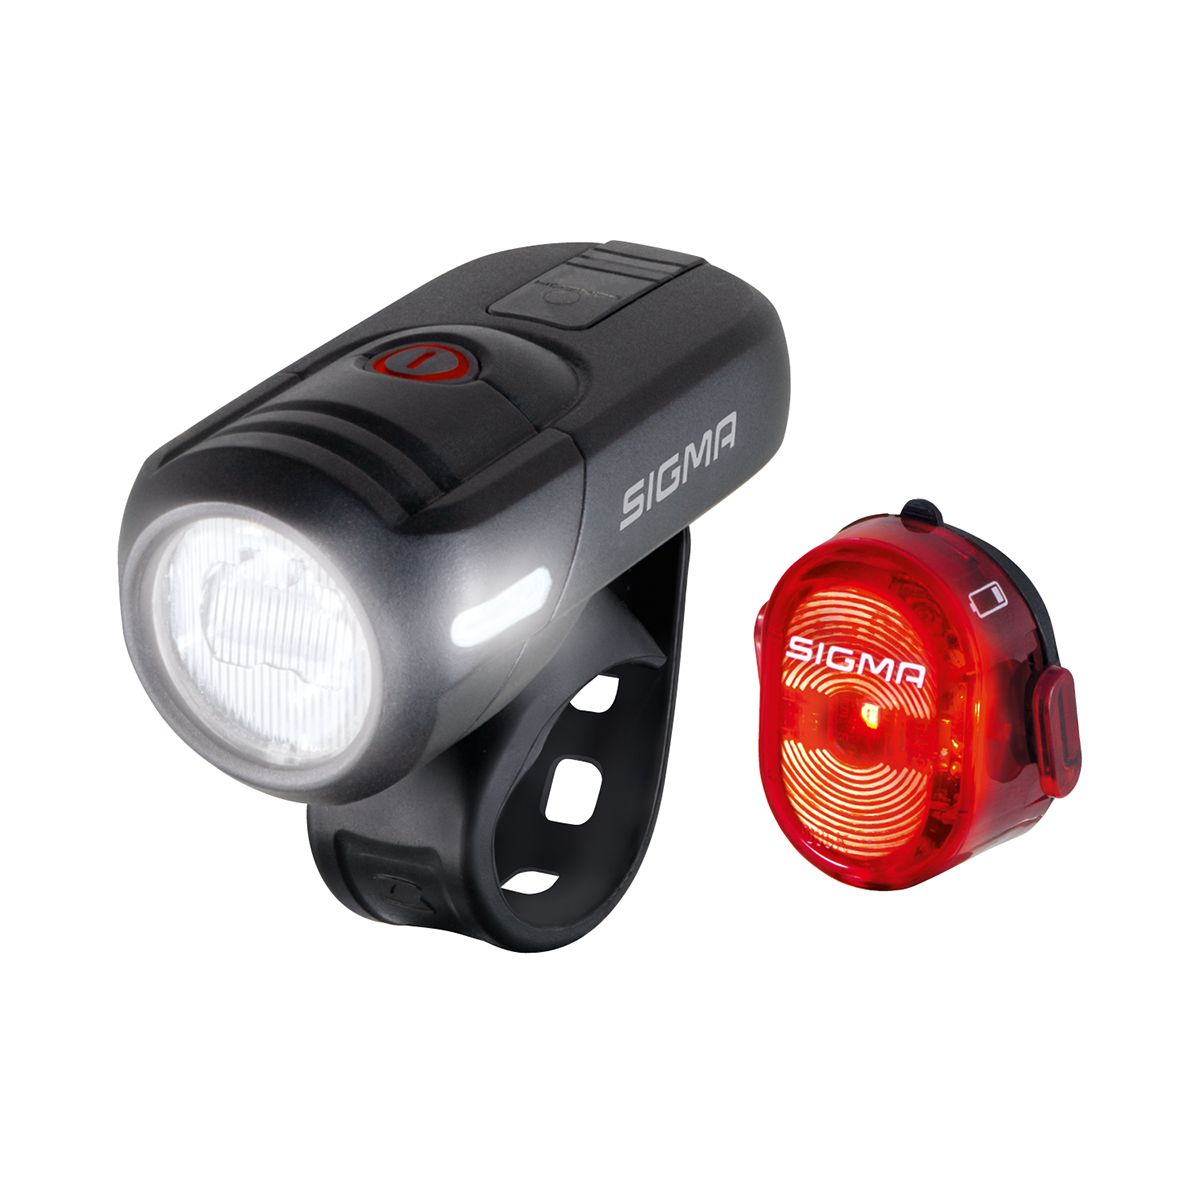 AURA 45 USB LED front light / NUGGET II rear light kit